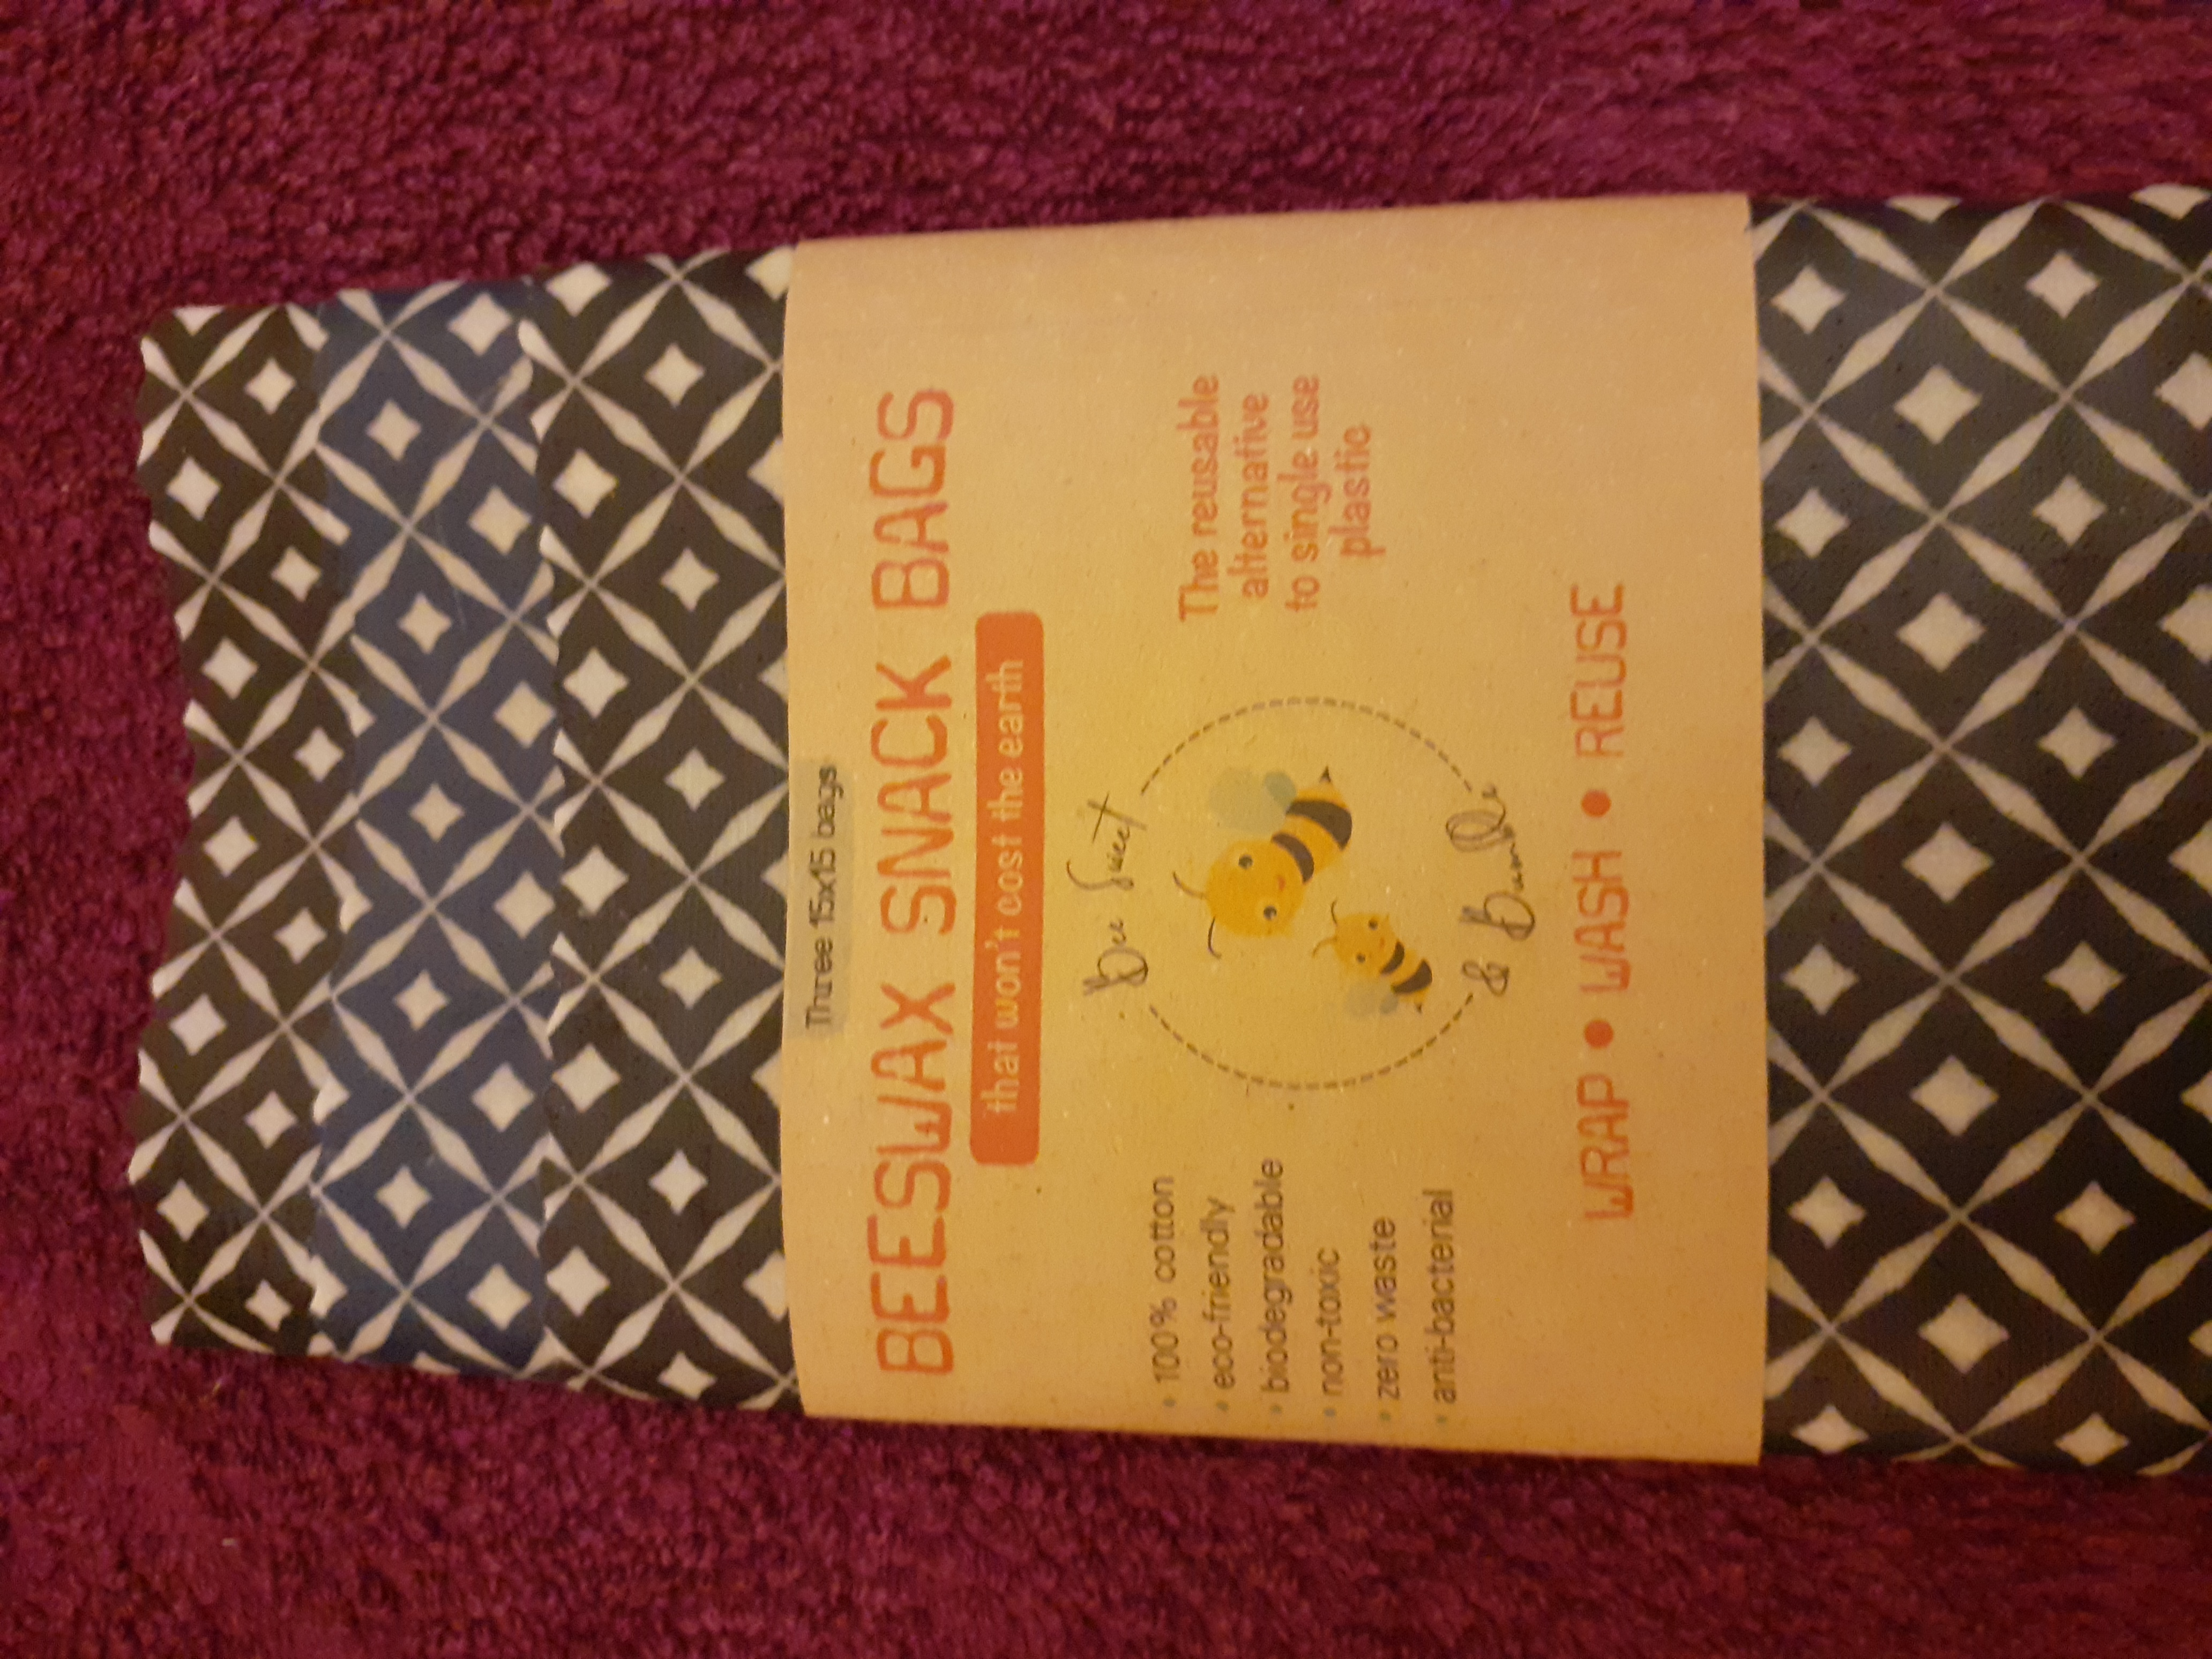 Beeswax Snack bag - 3 bags